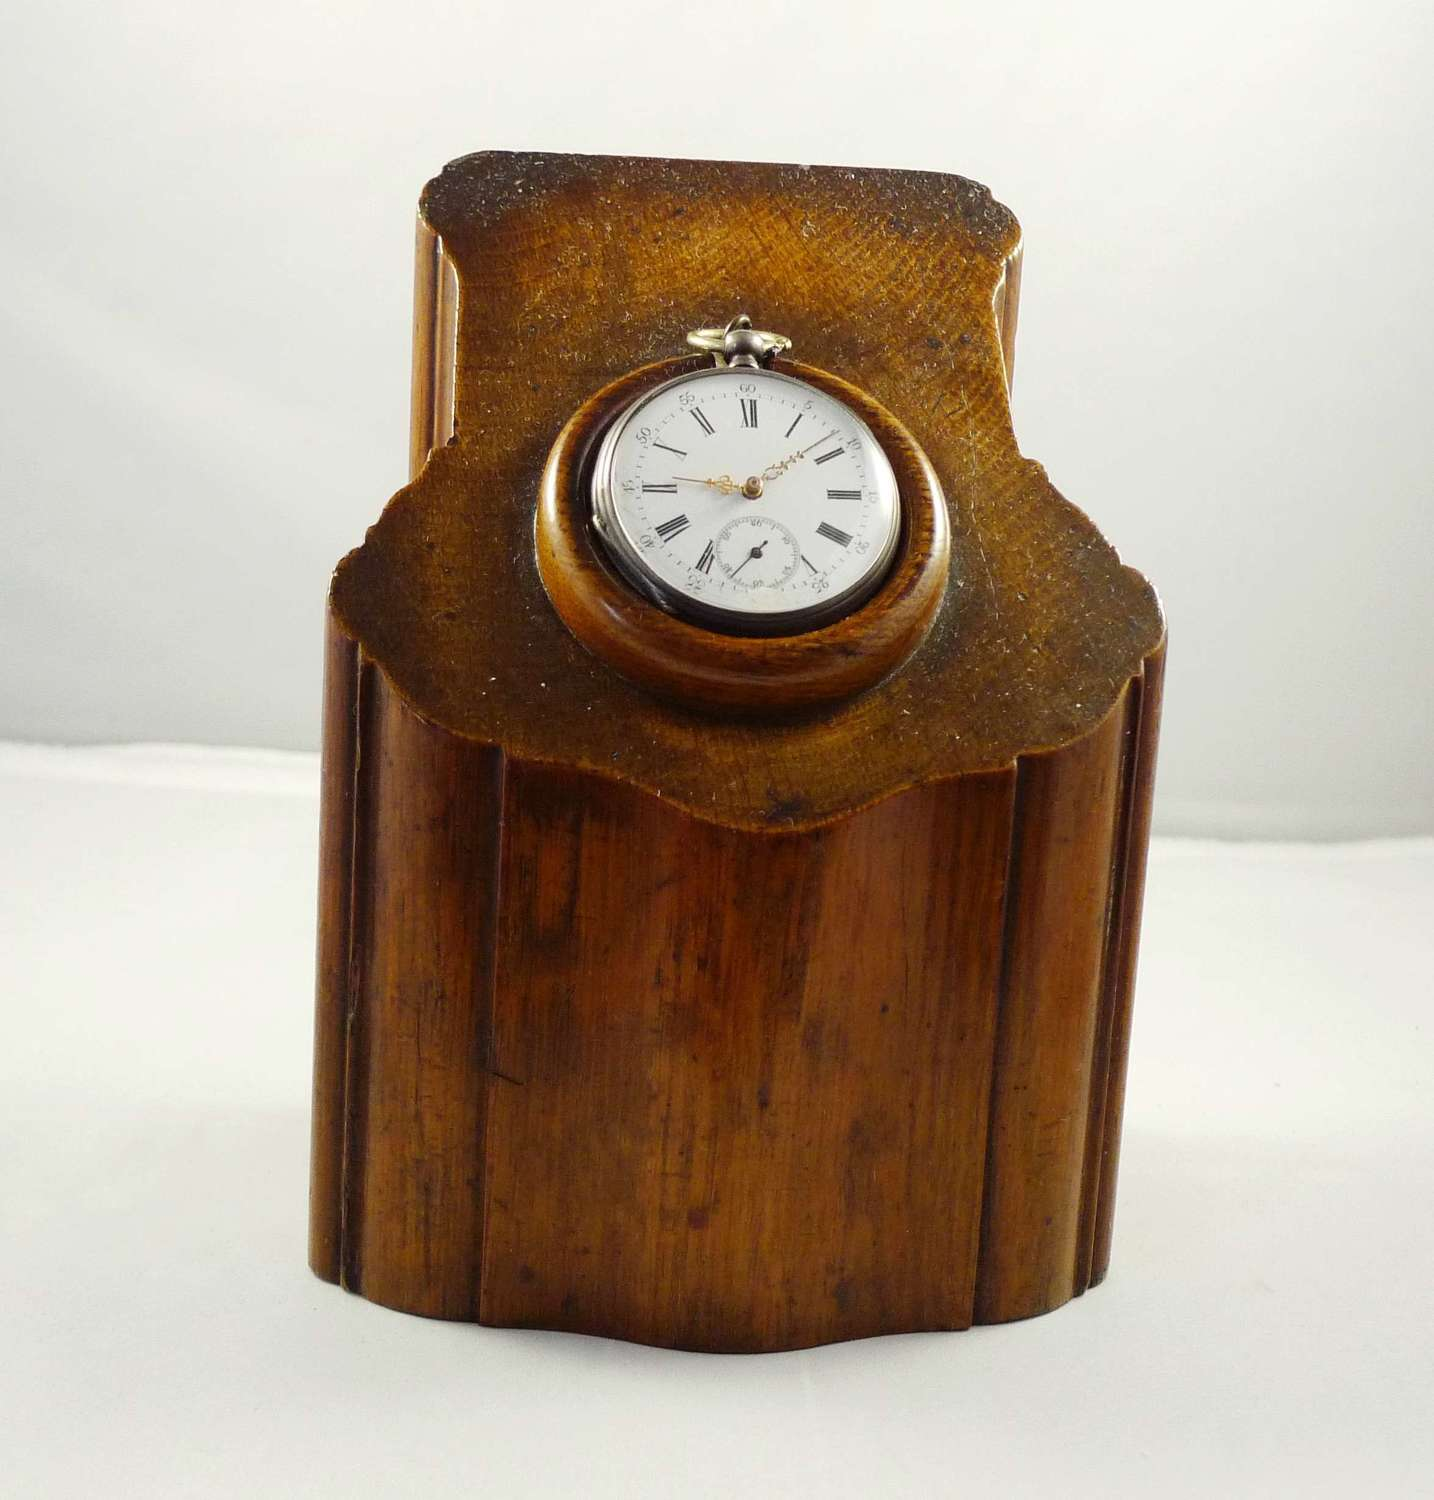 Mahogany Wooden Watch Stand Custom Made for this Silver Pocket Watch